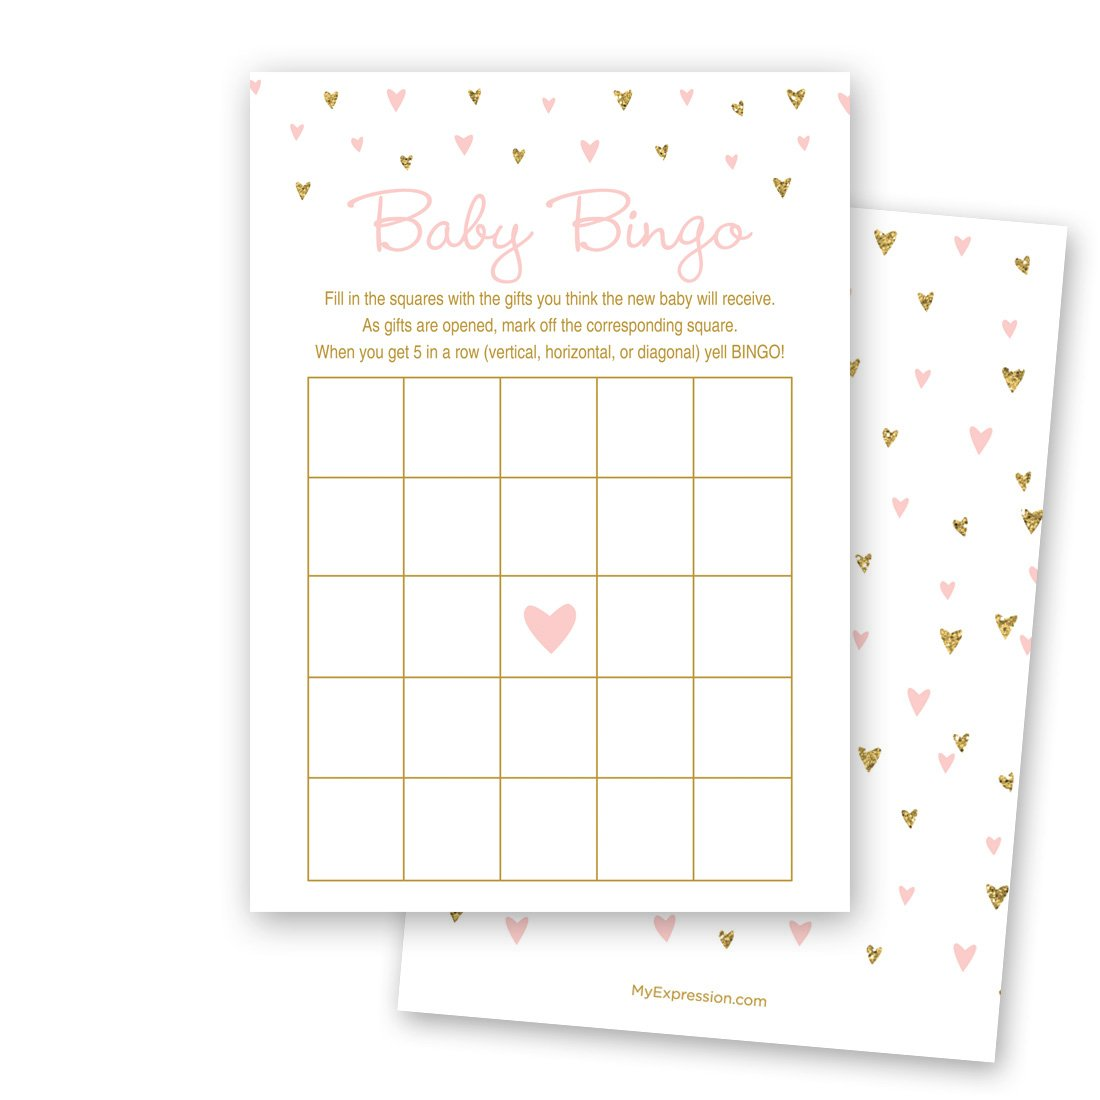 MyExpression.com 24 Cnt Gold Glitter Graphic Hearts Baby Bingo Cards by MyExpression.com